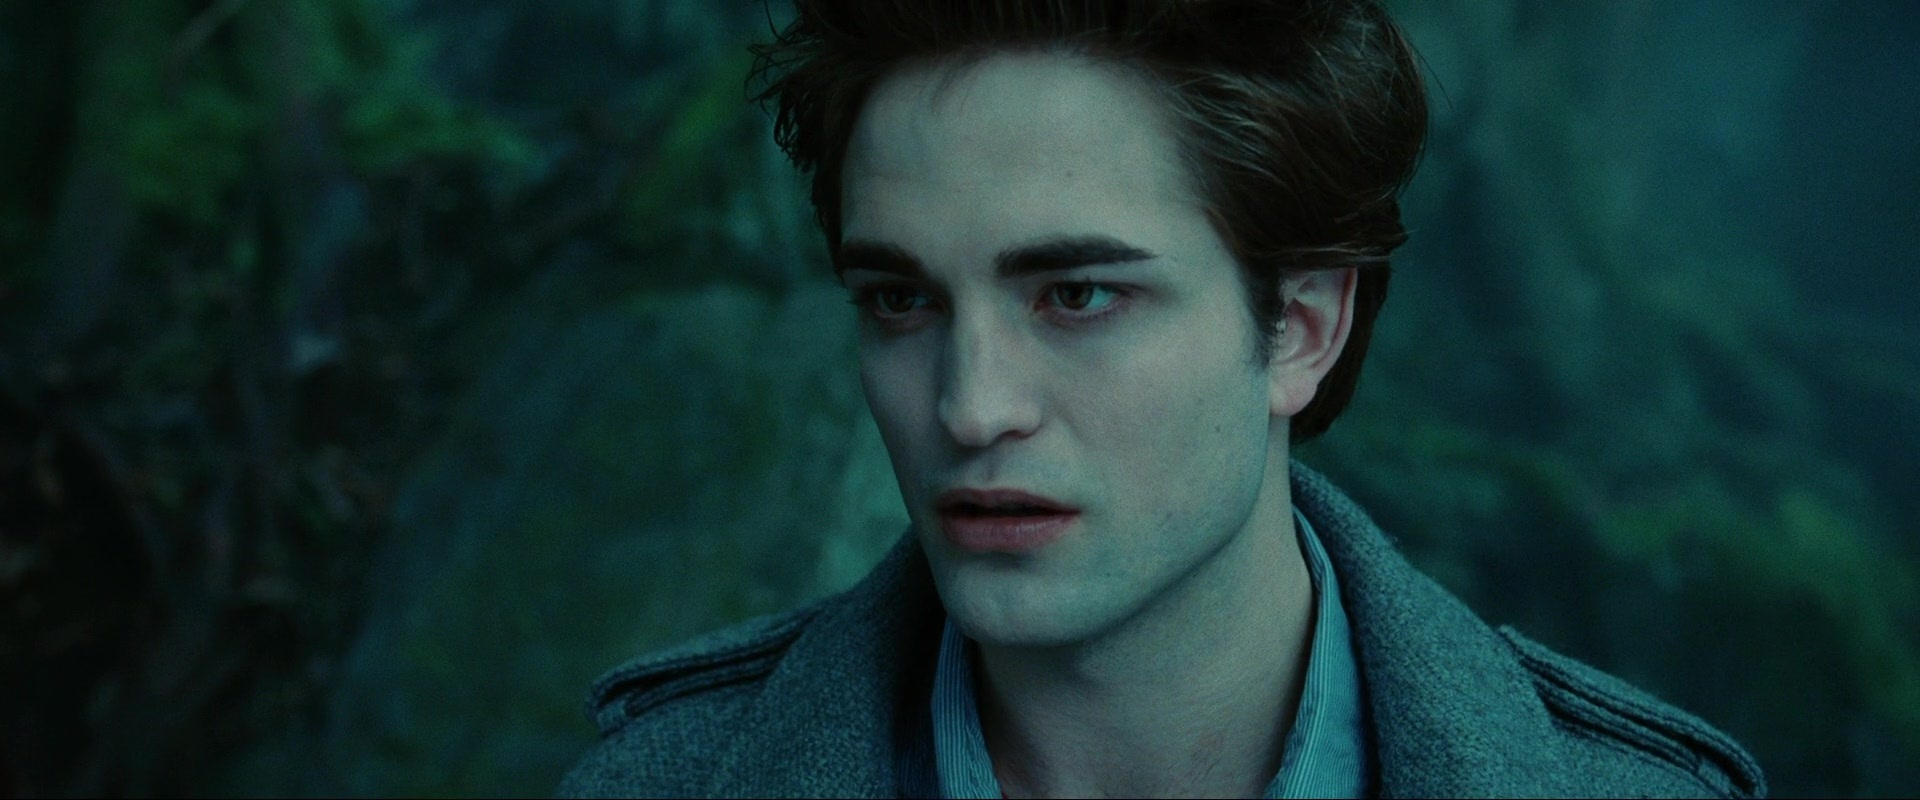 Twilight-FULL-HD-robert-pattinson-148326